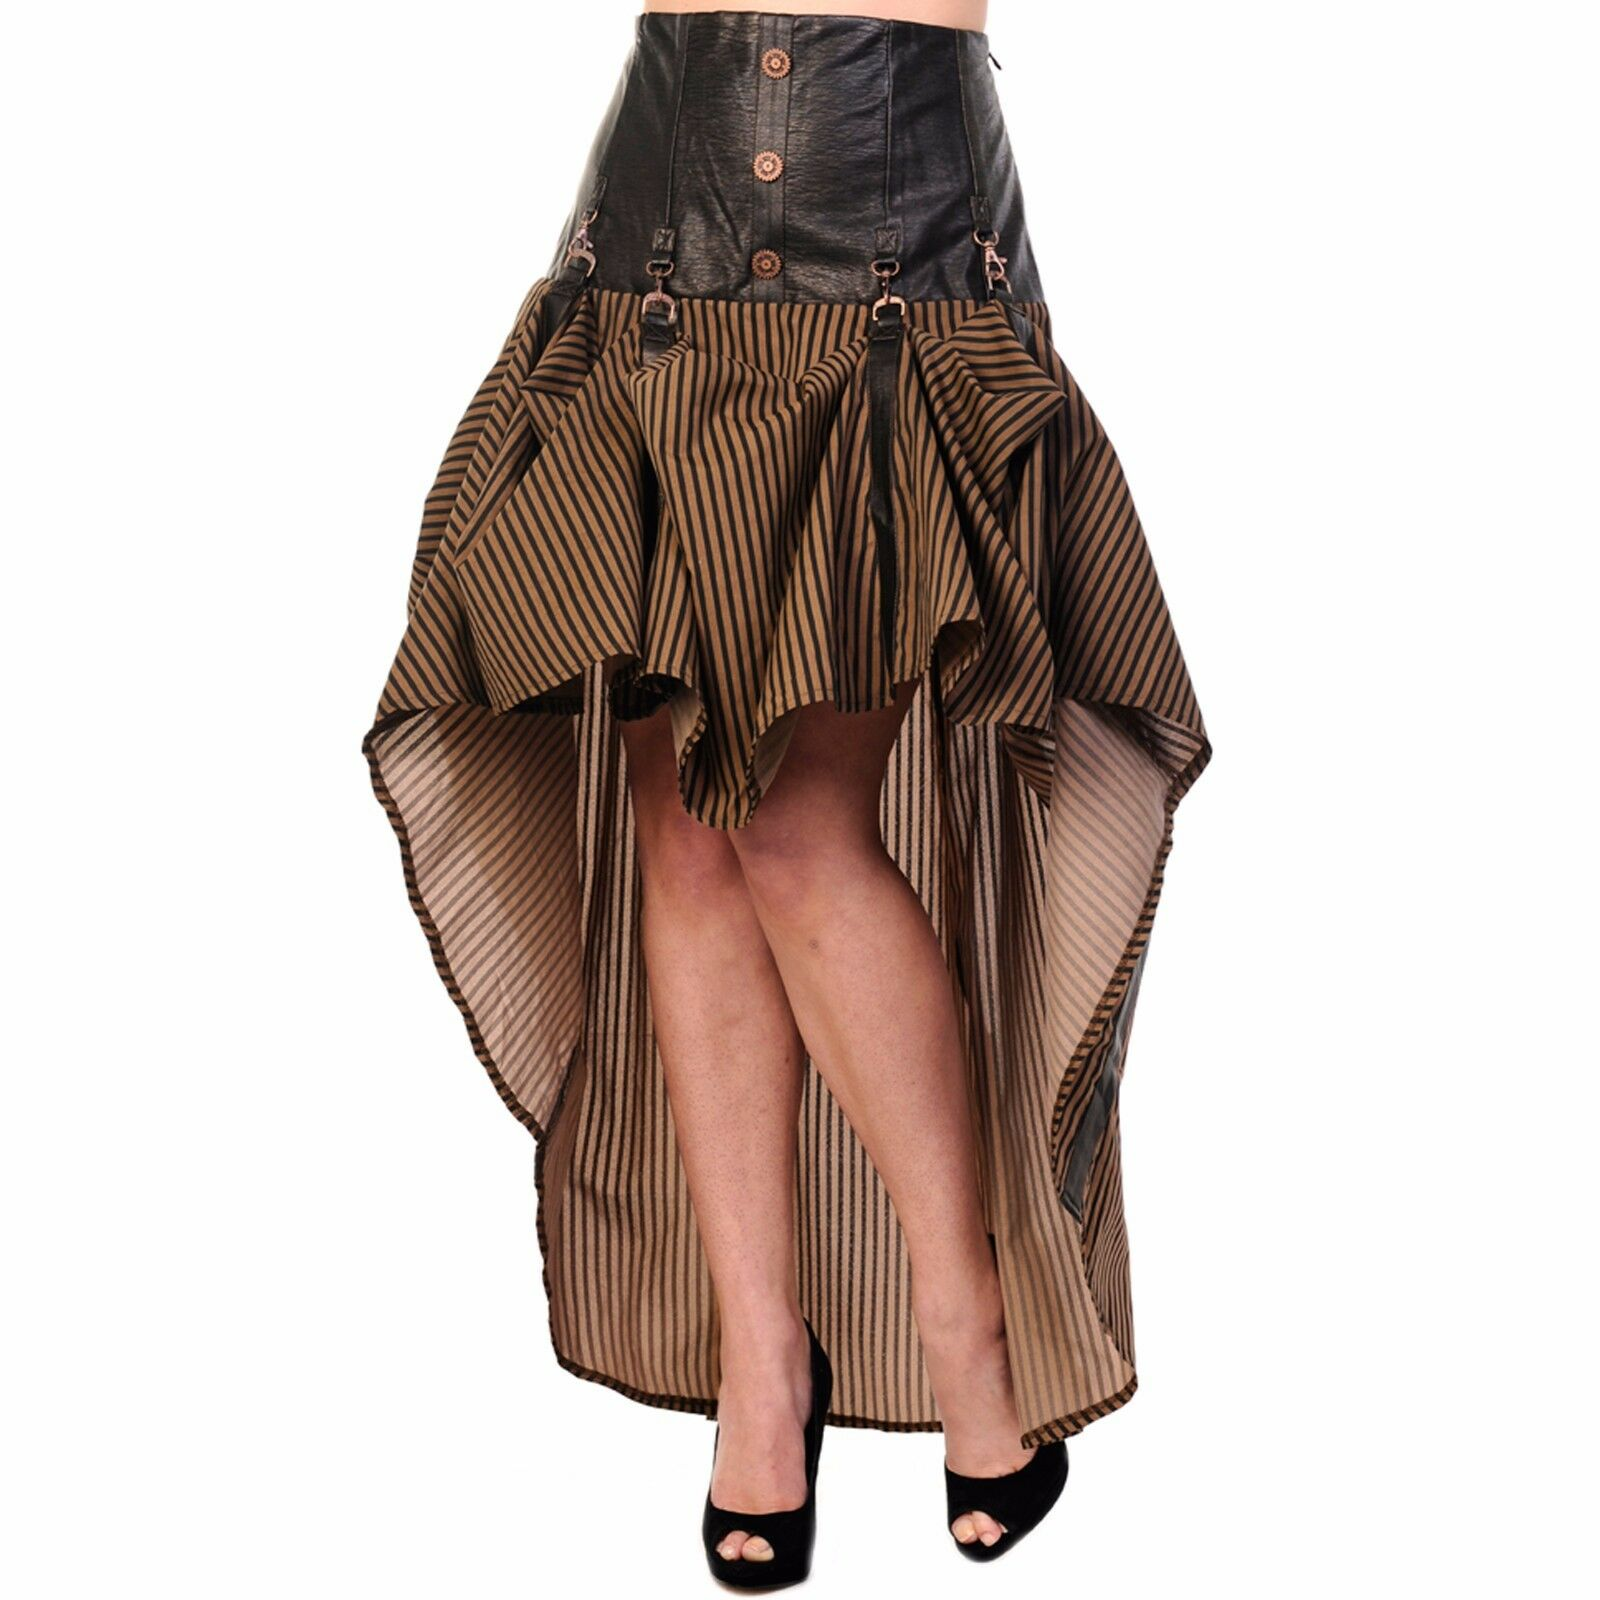 Crank It Up Steampunk Skirt - Waterfall Brown Striped Victorian Gothic Skirt